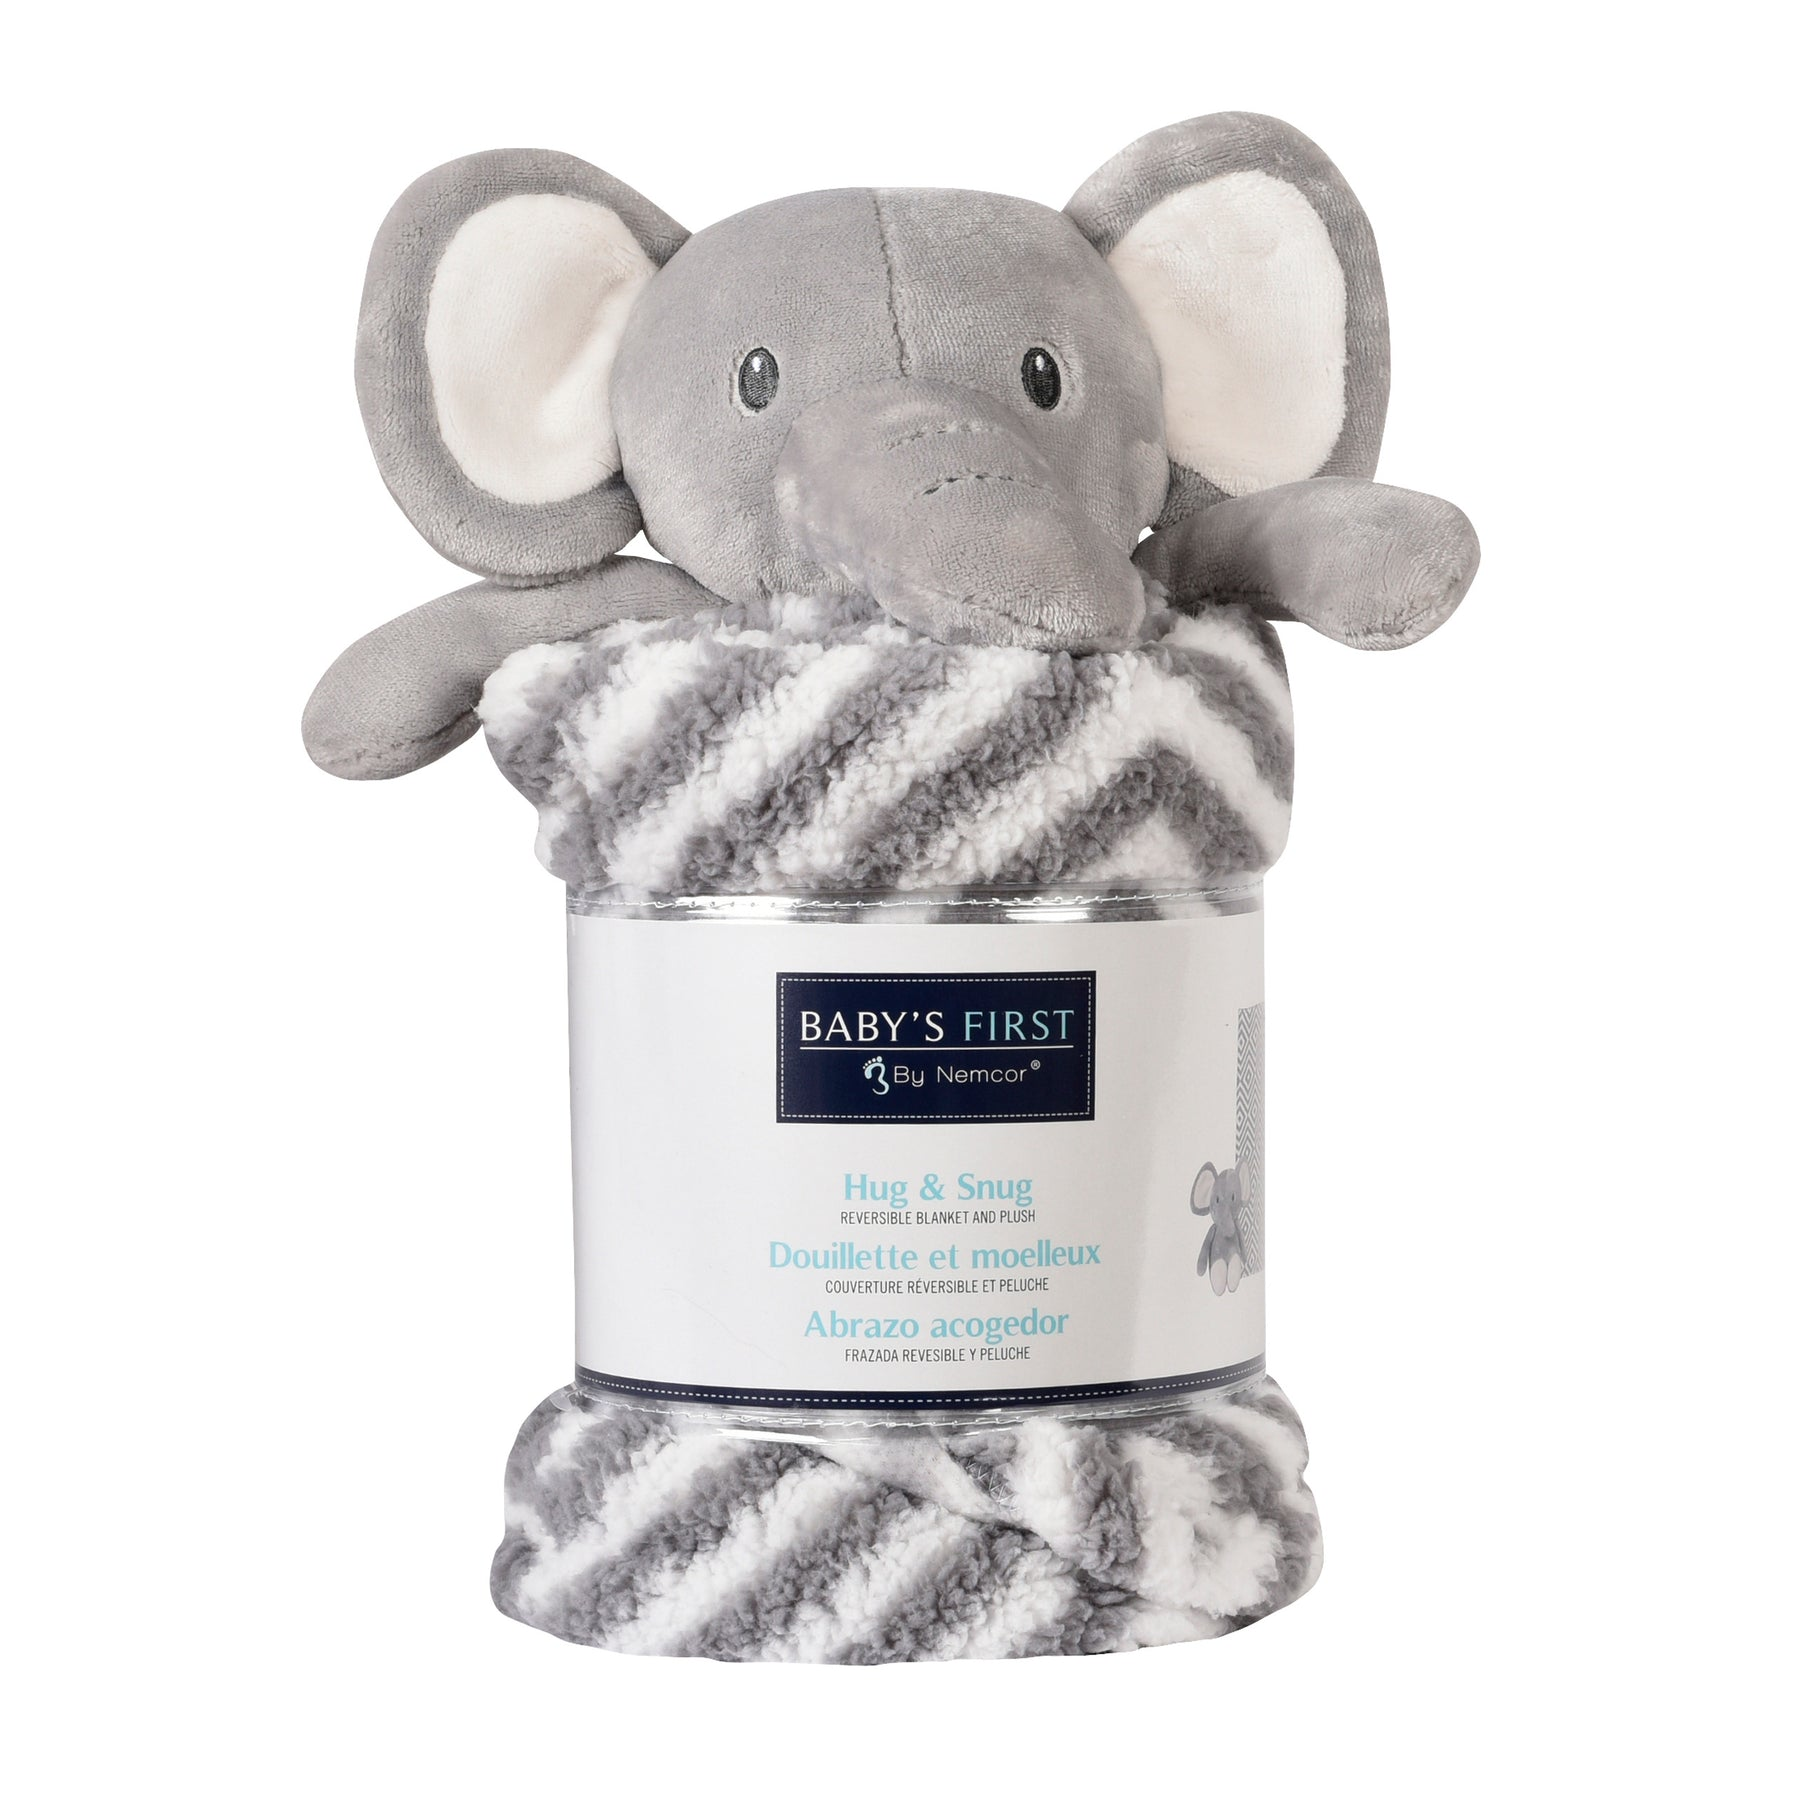 Baby's First Hug & Snug Elephant